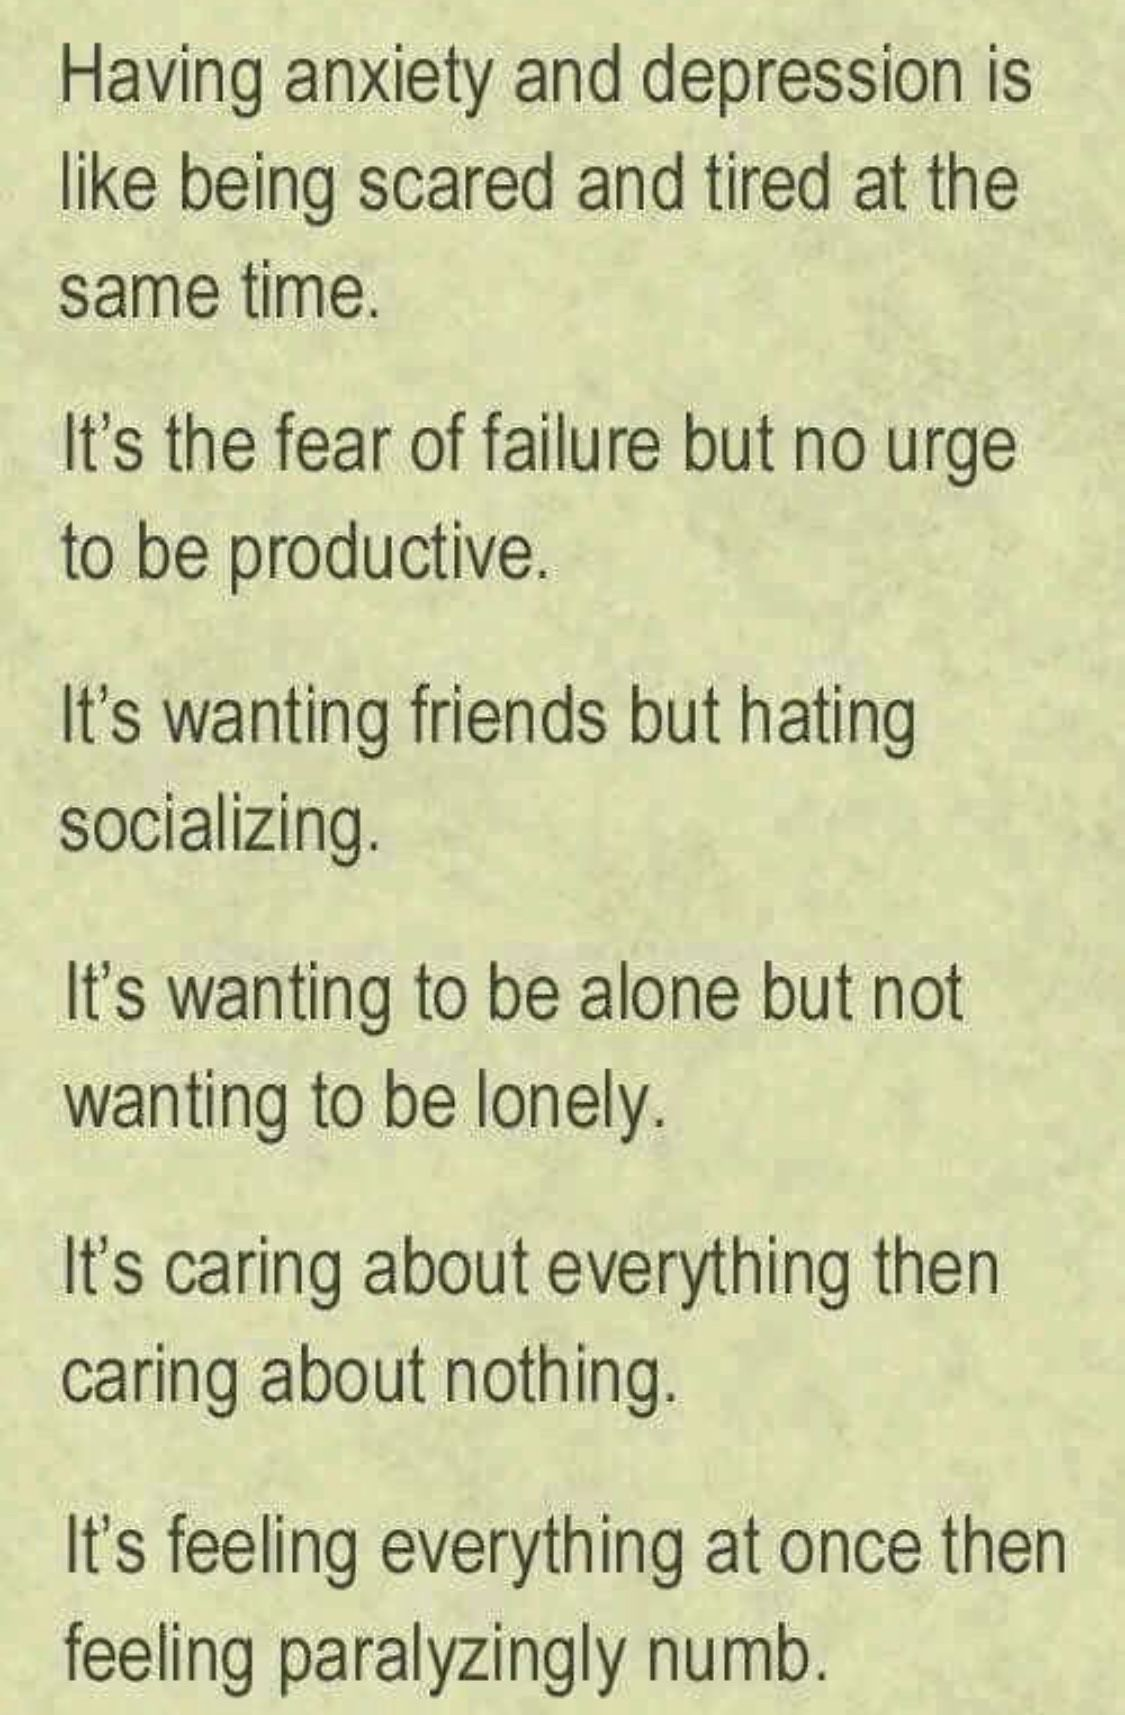 Pin by Amy Meadows on Fibro | Wanting to be alone ...